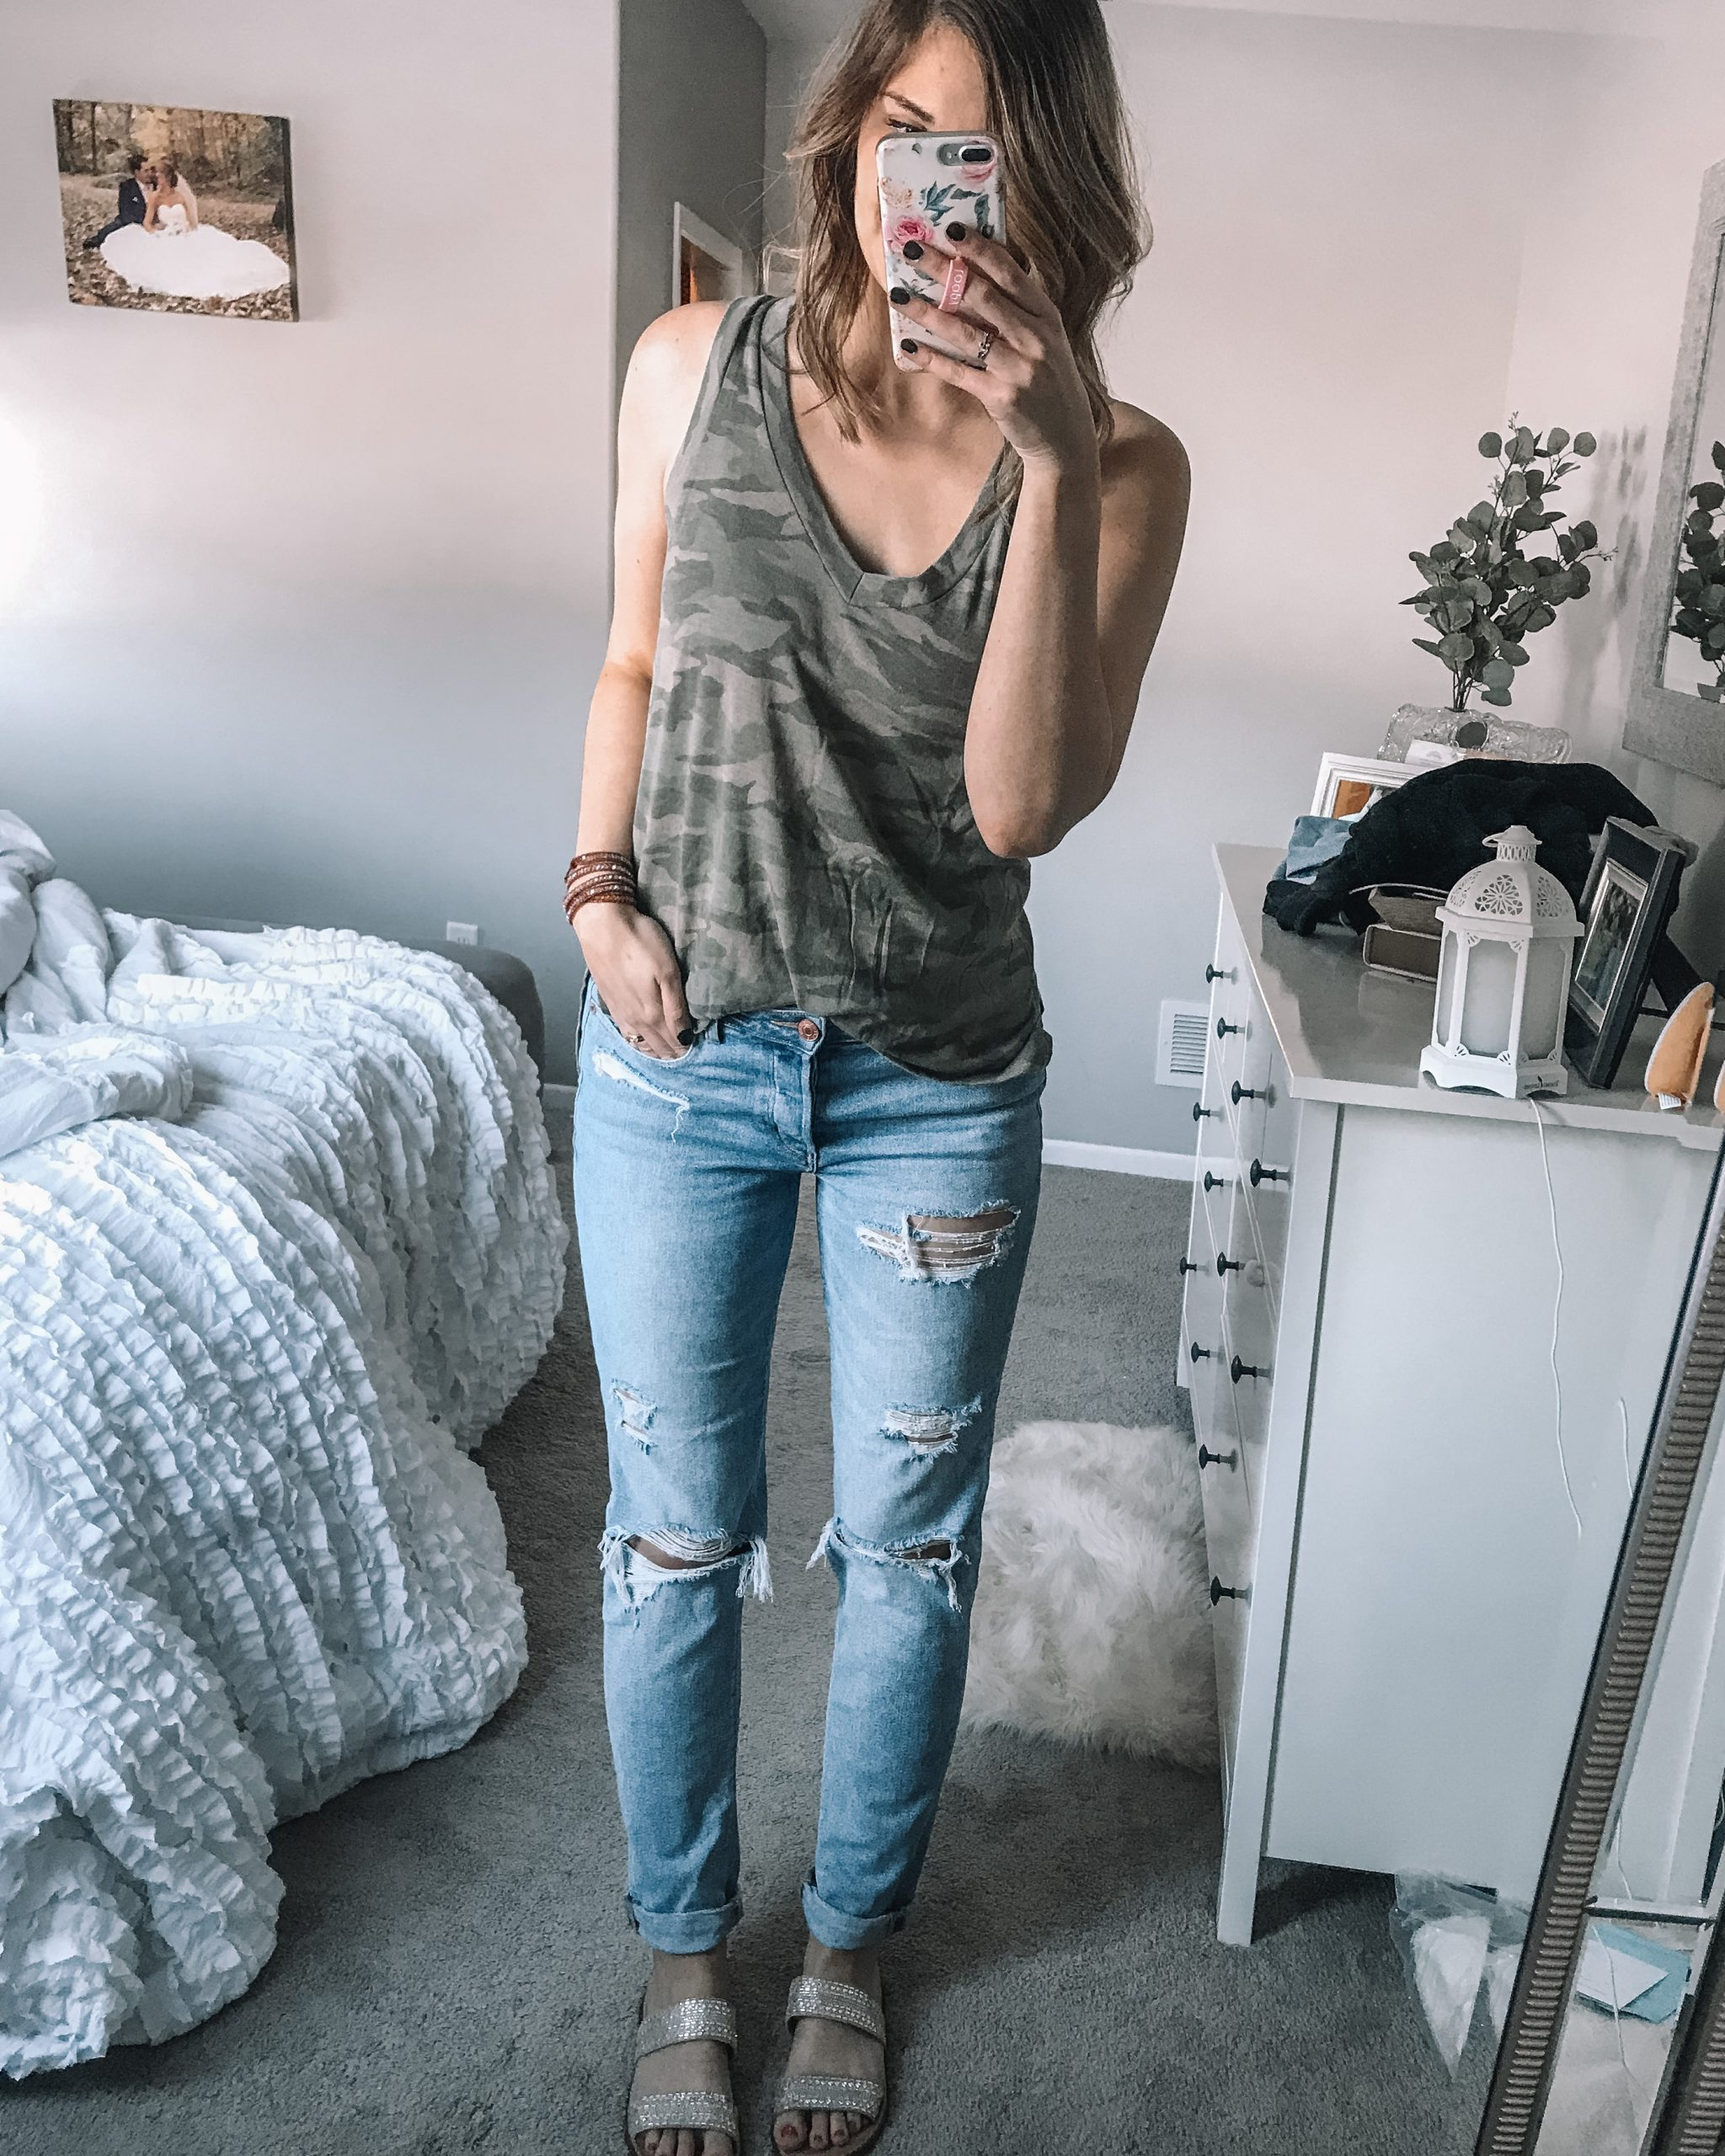 camoflauge v neck tank top from aerie tomgirl stretch jeans rhinestone slide sandals from target